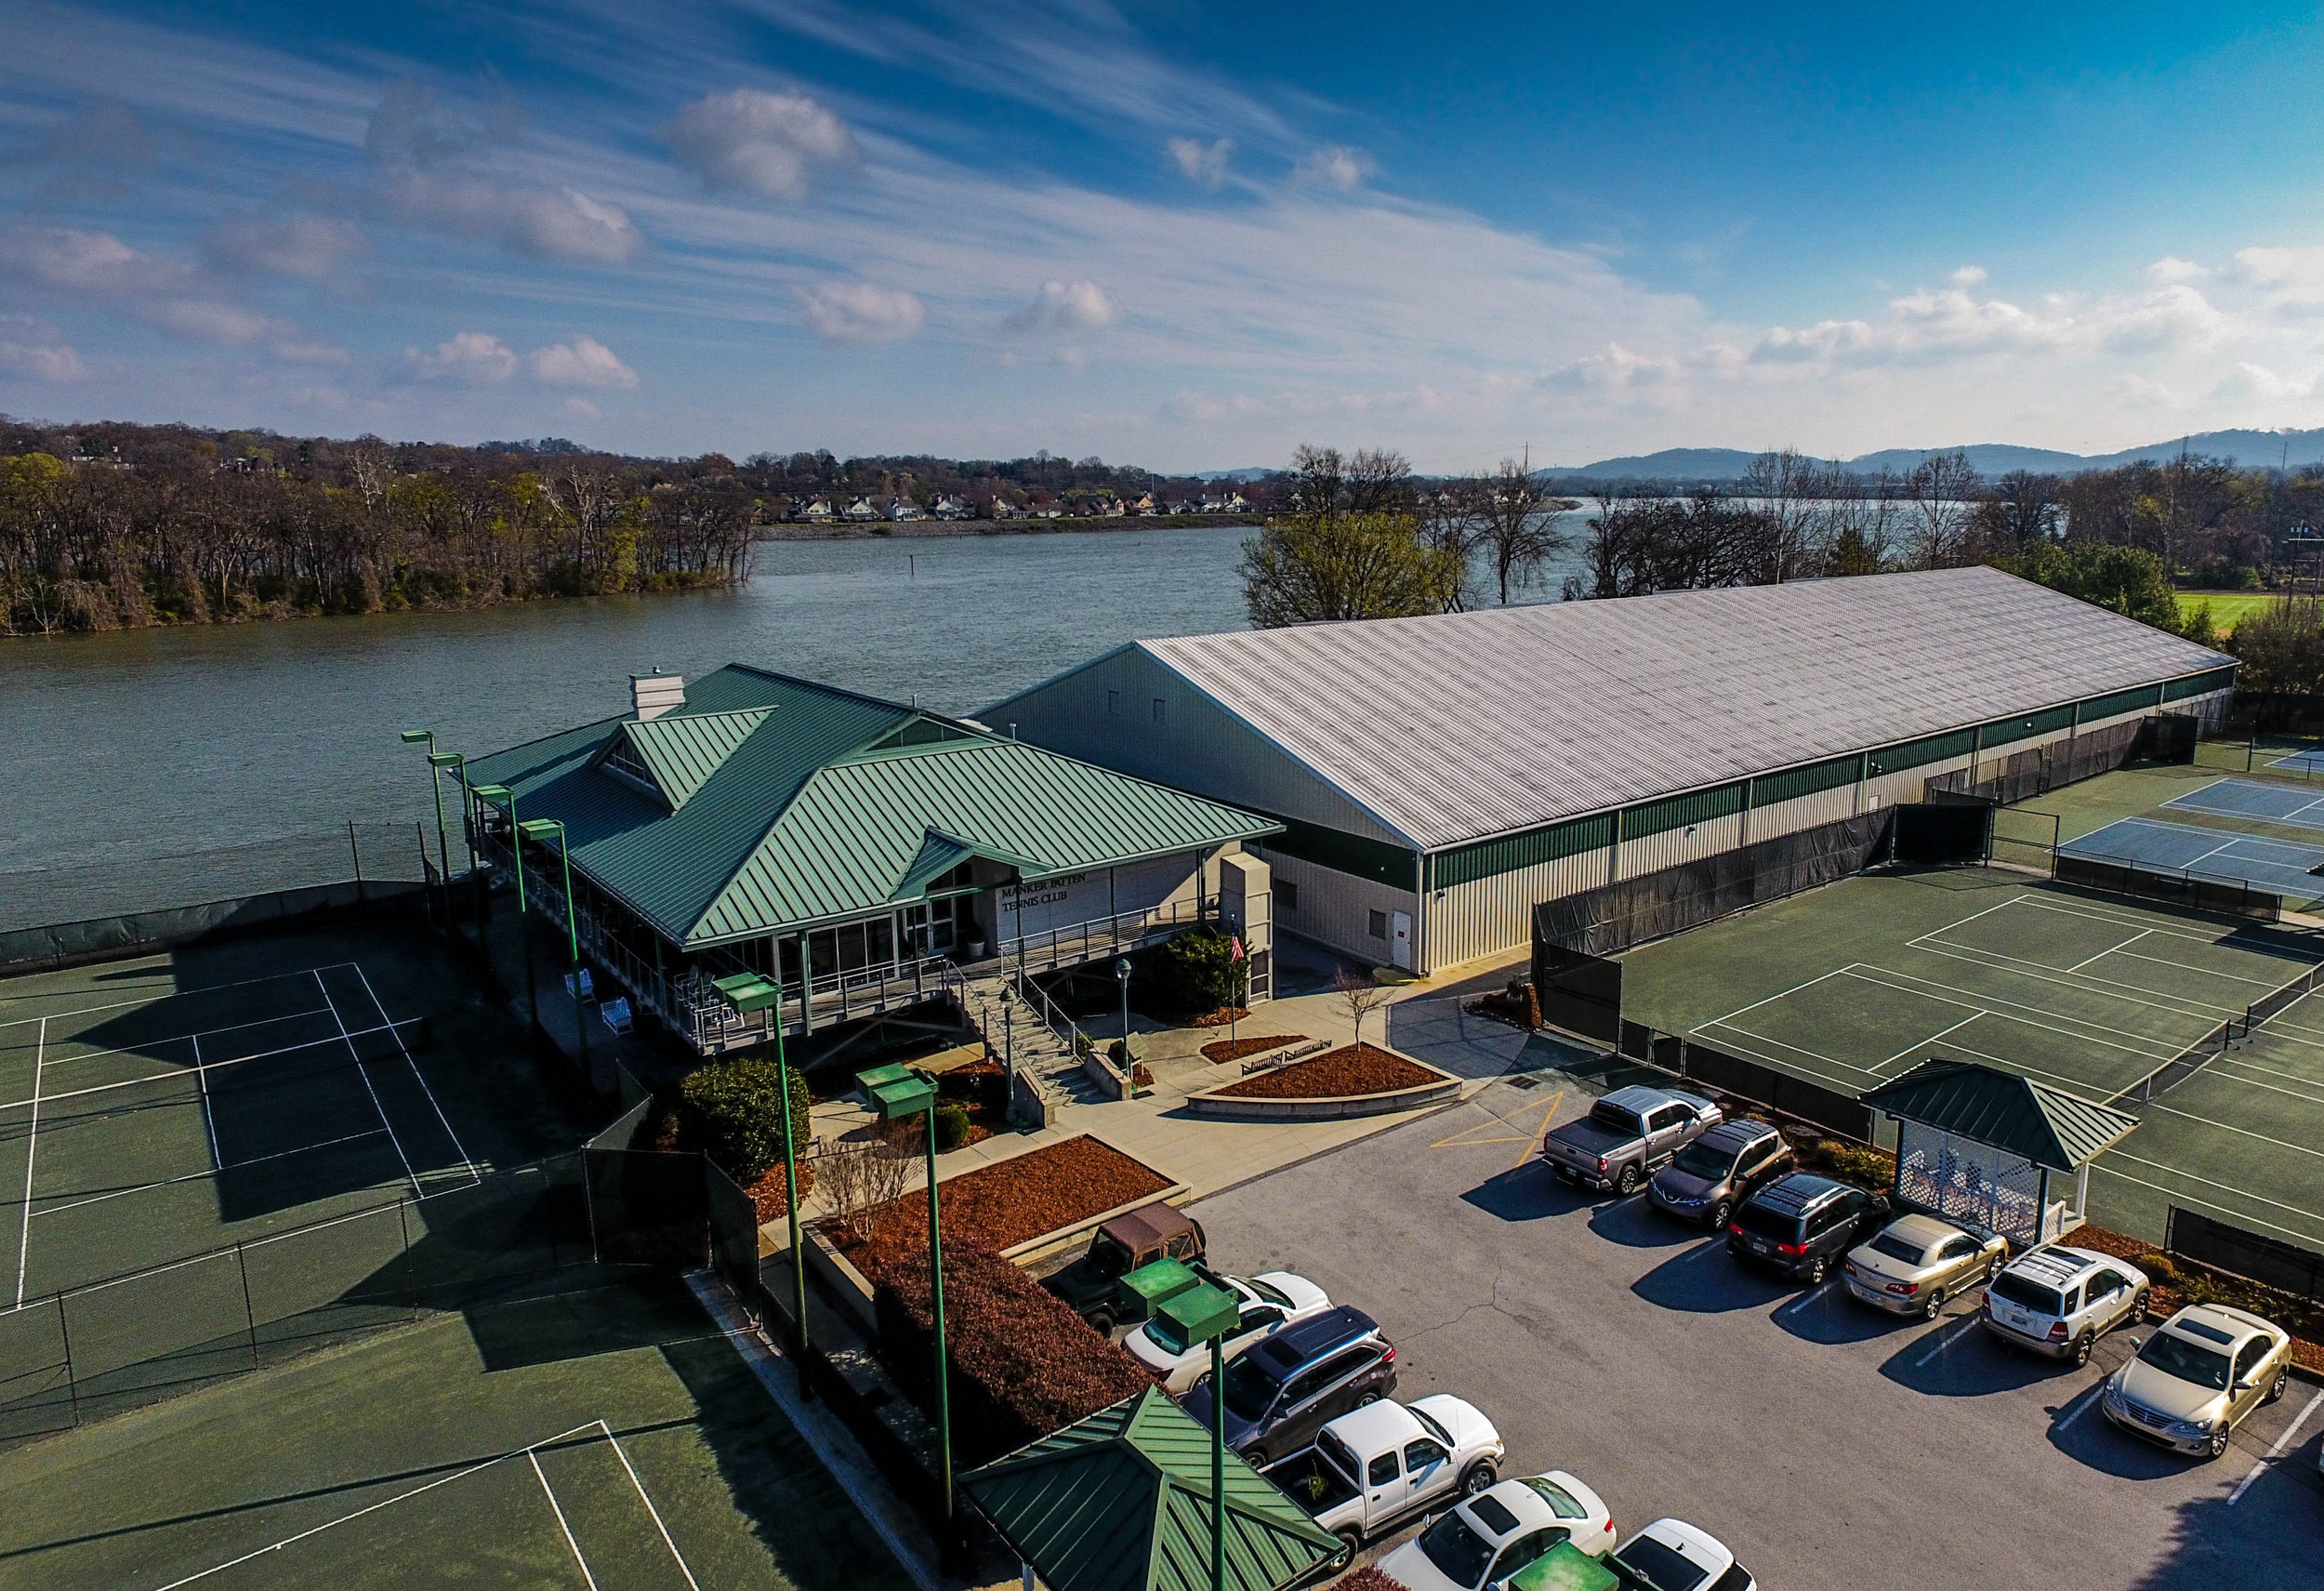 Manker Patten Tennis Club   In 2006 we completed a total renovation of the Zan Gurrey Clubhouse for the historical Manker Patten Tennis Club, located on the banks of the Tennessee River in Downtown Chattanooga, TN. This 6,000 square foot complex is complete with a full service pro shop, fitness room, lounge and dining area, and locker rooms. Not just a tennis complex, the scenic views and beautiful construction of Zan Gurrey Clubhouse is perfect for hosting a multitude of events including weddings, receptions, and private parties. In addition to this project, our past work for Manker Patten includes a 31,000 square foot indoor tennis facility located adjacent to the clubhouse that houses 5 hard courts.